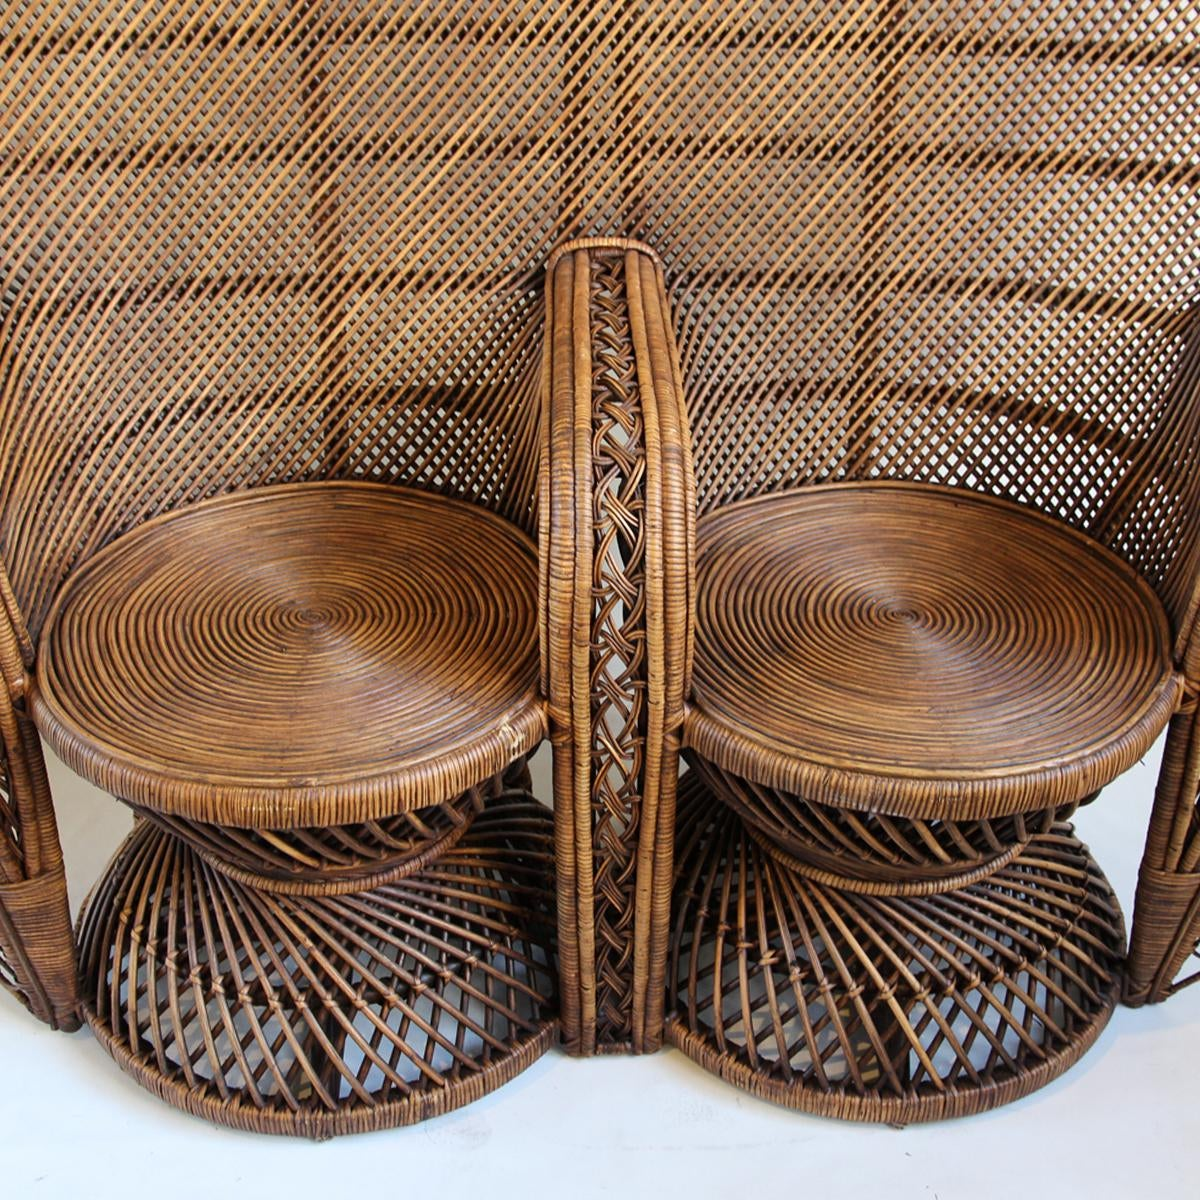 Double Plantation Peacock Chair   Chairish Double plantation style rattan peacock chair with a beautiful dark stained  finish  This unique chair